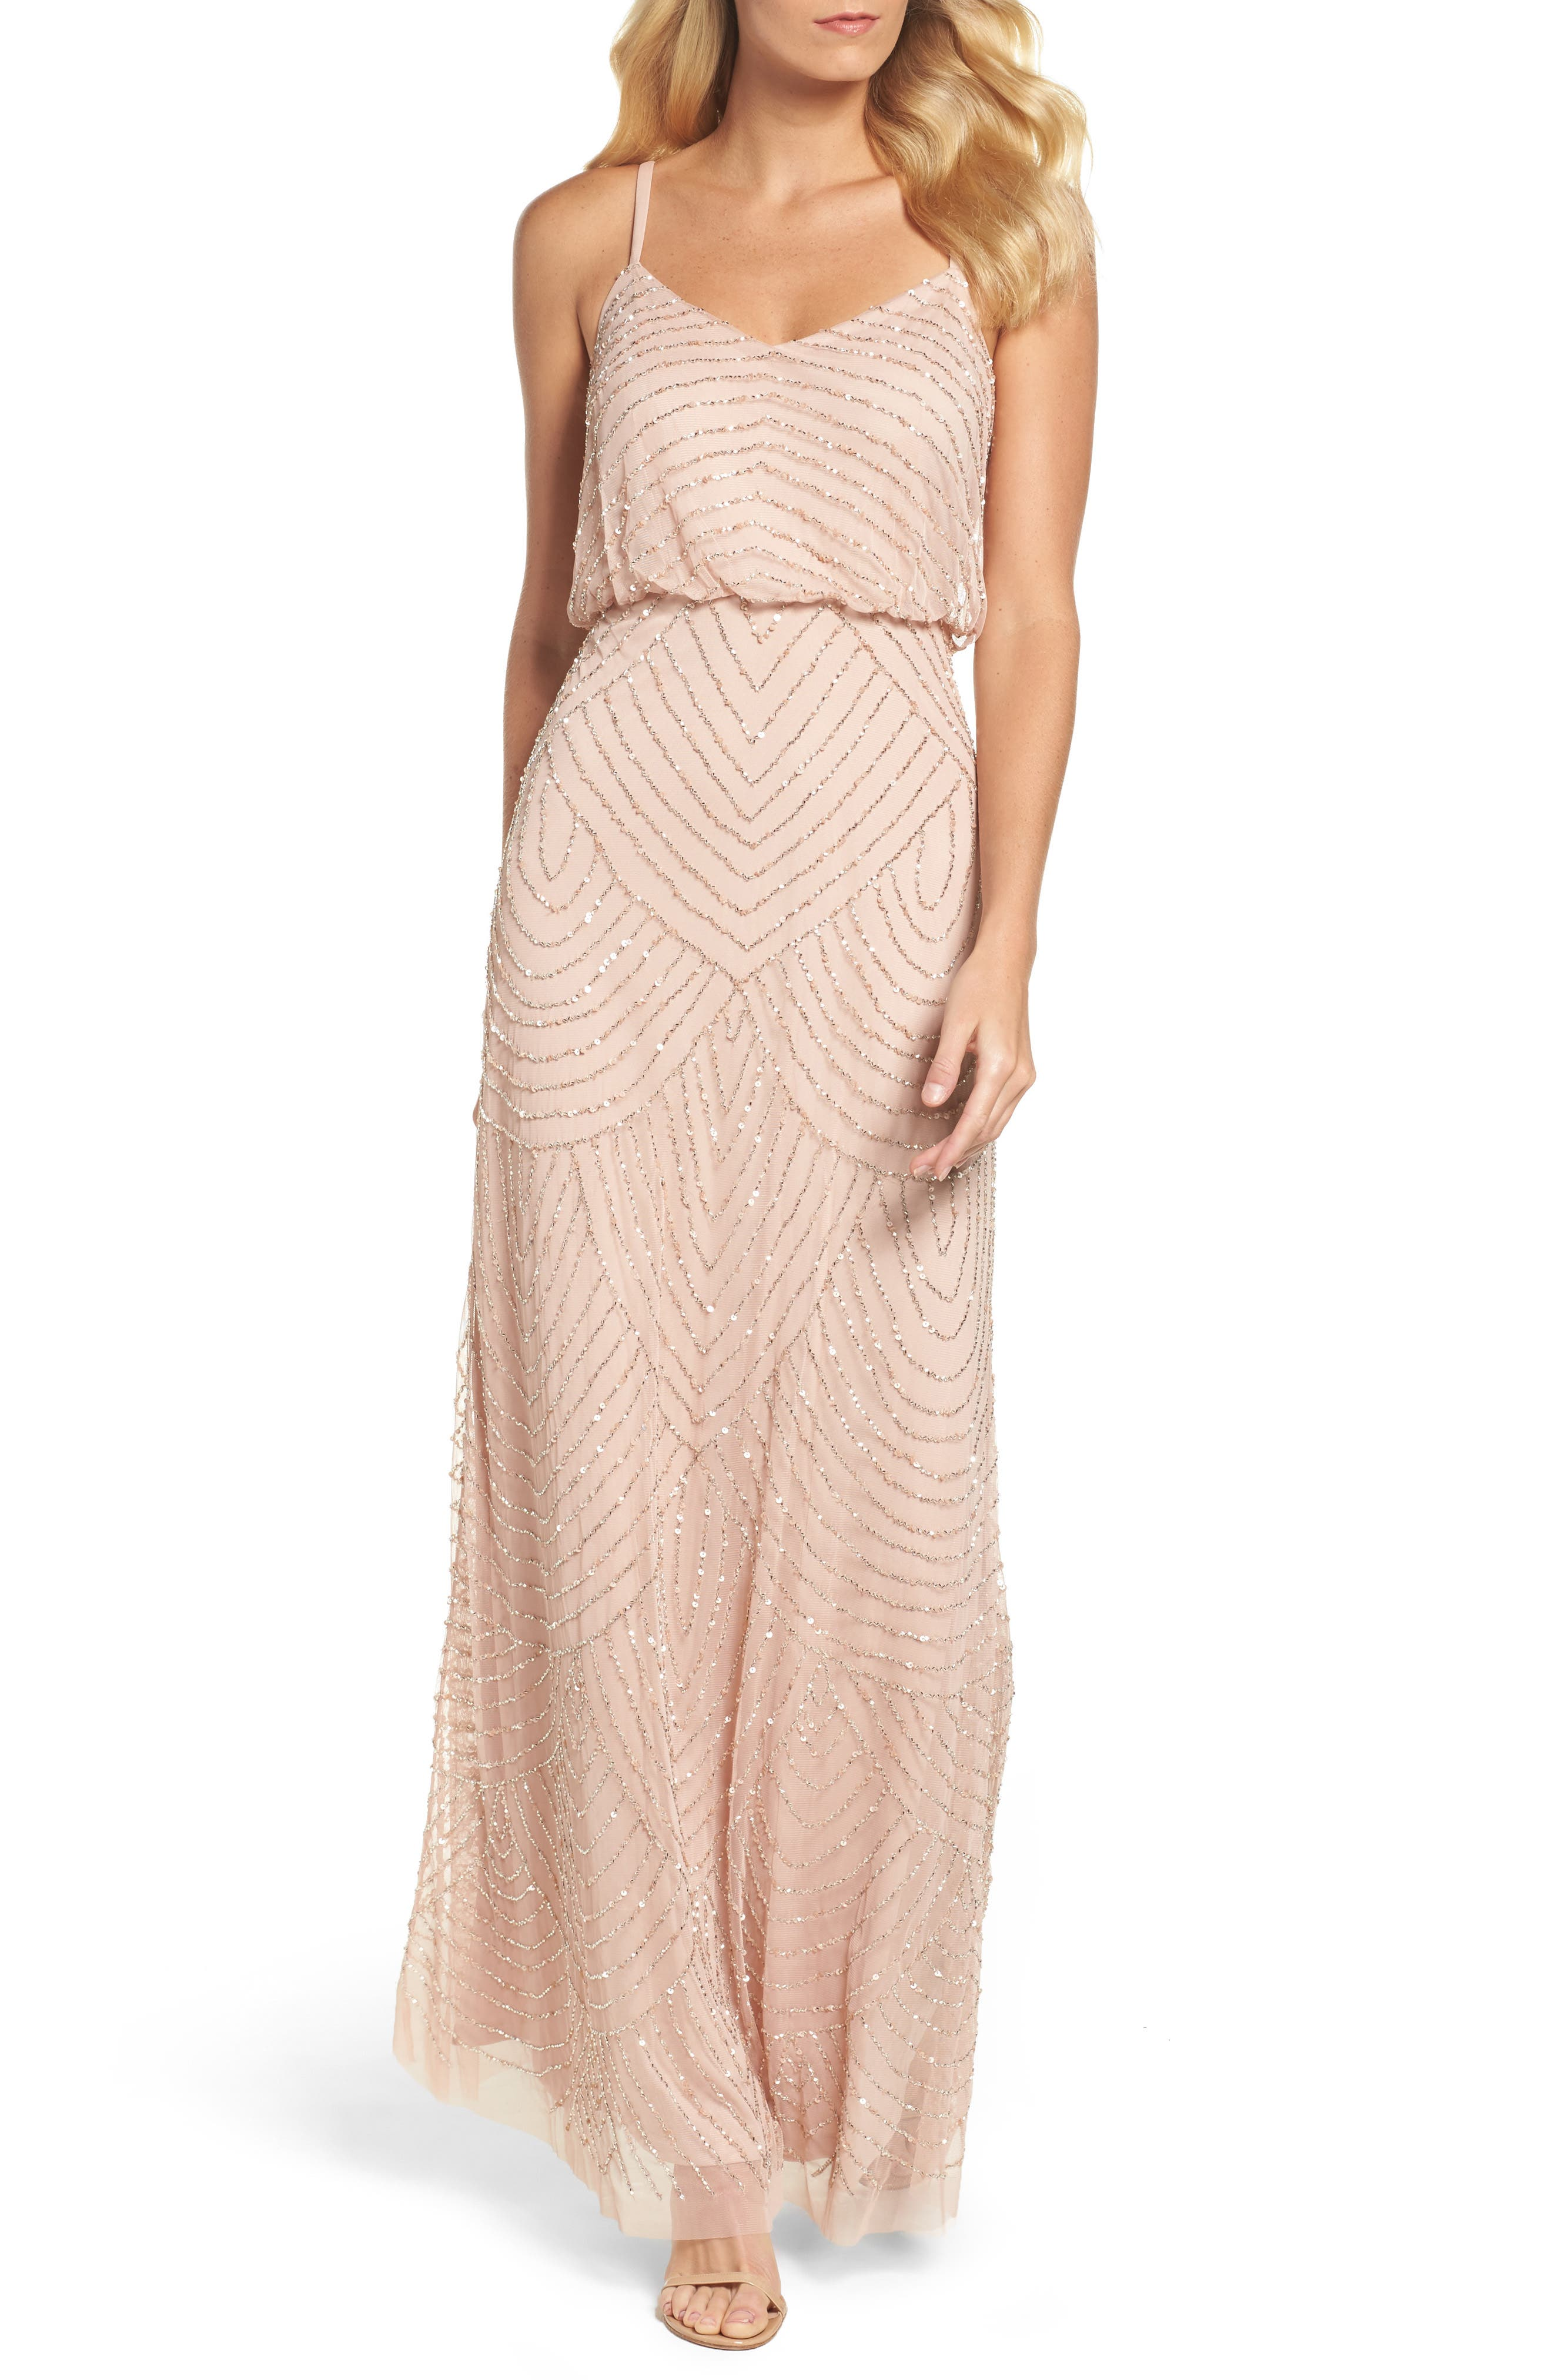 Alternate Image 1 Selected - Adrianna Papell Embellished Blouson Gown (Regular & Petite)